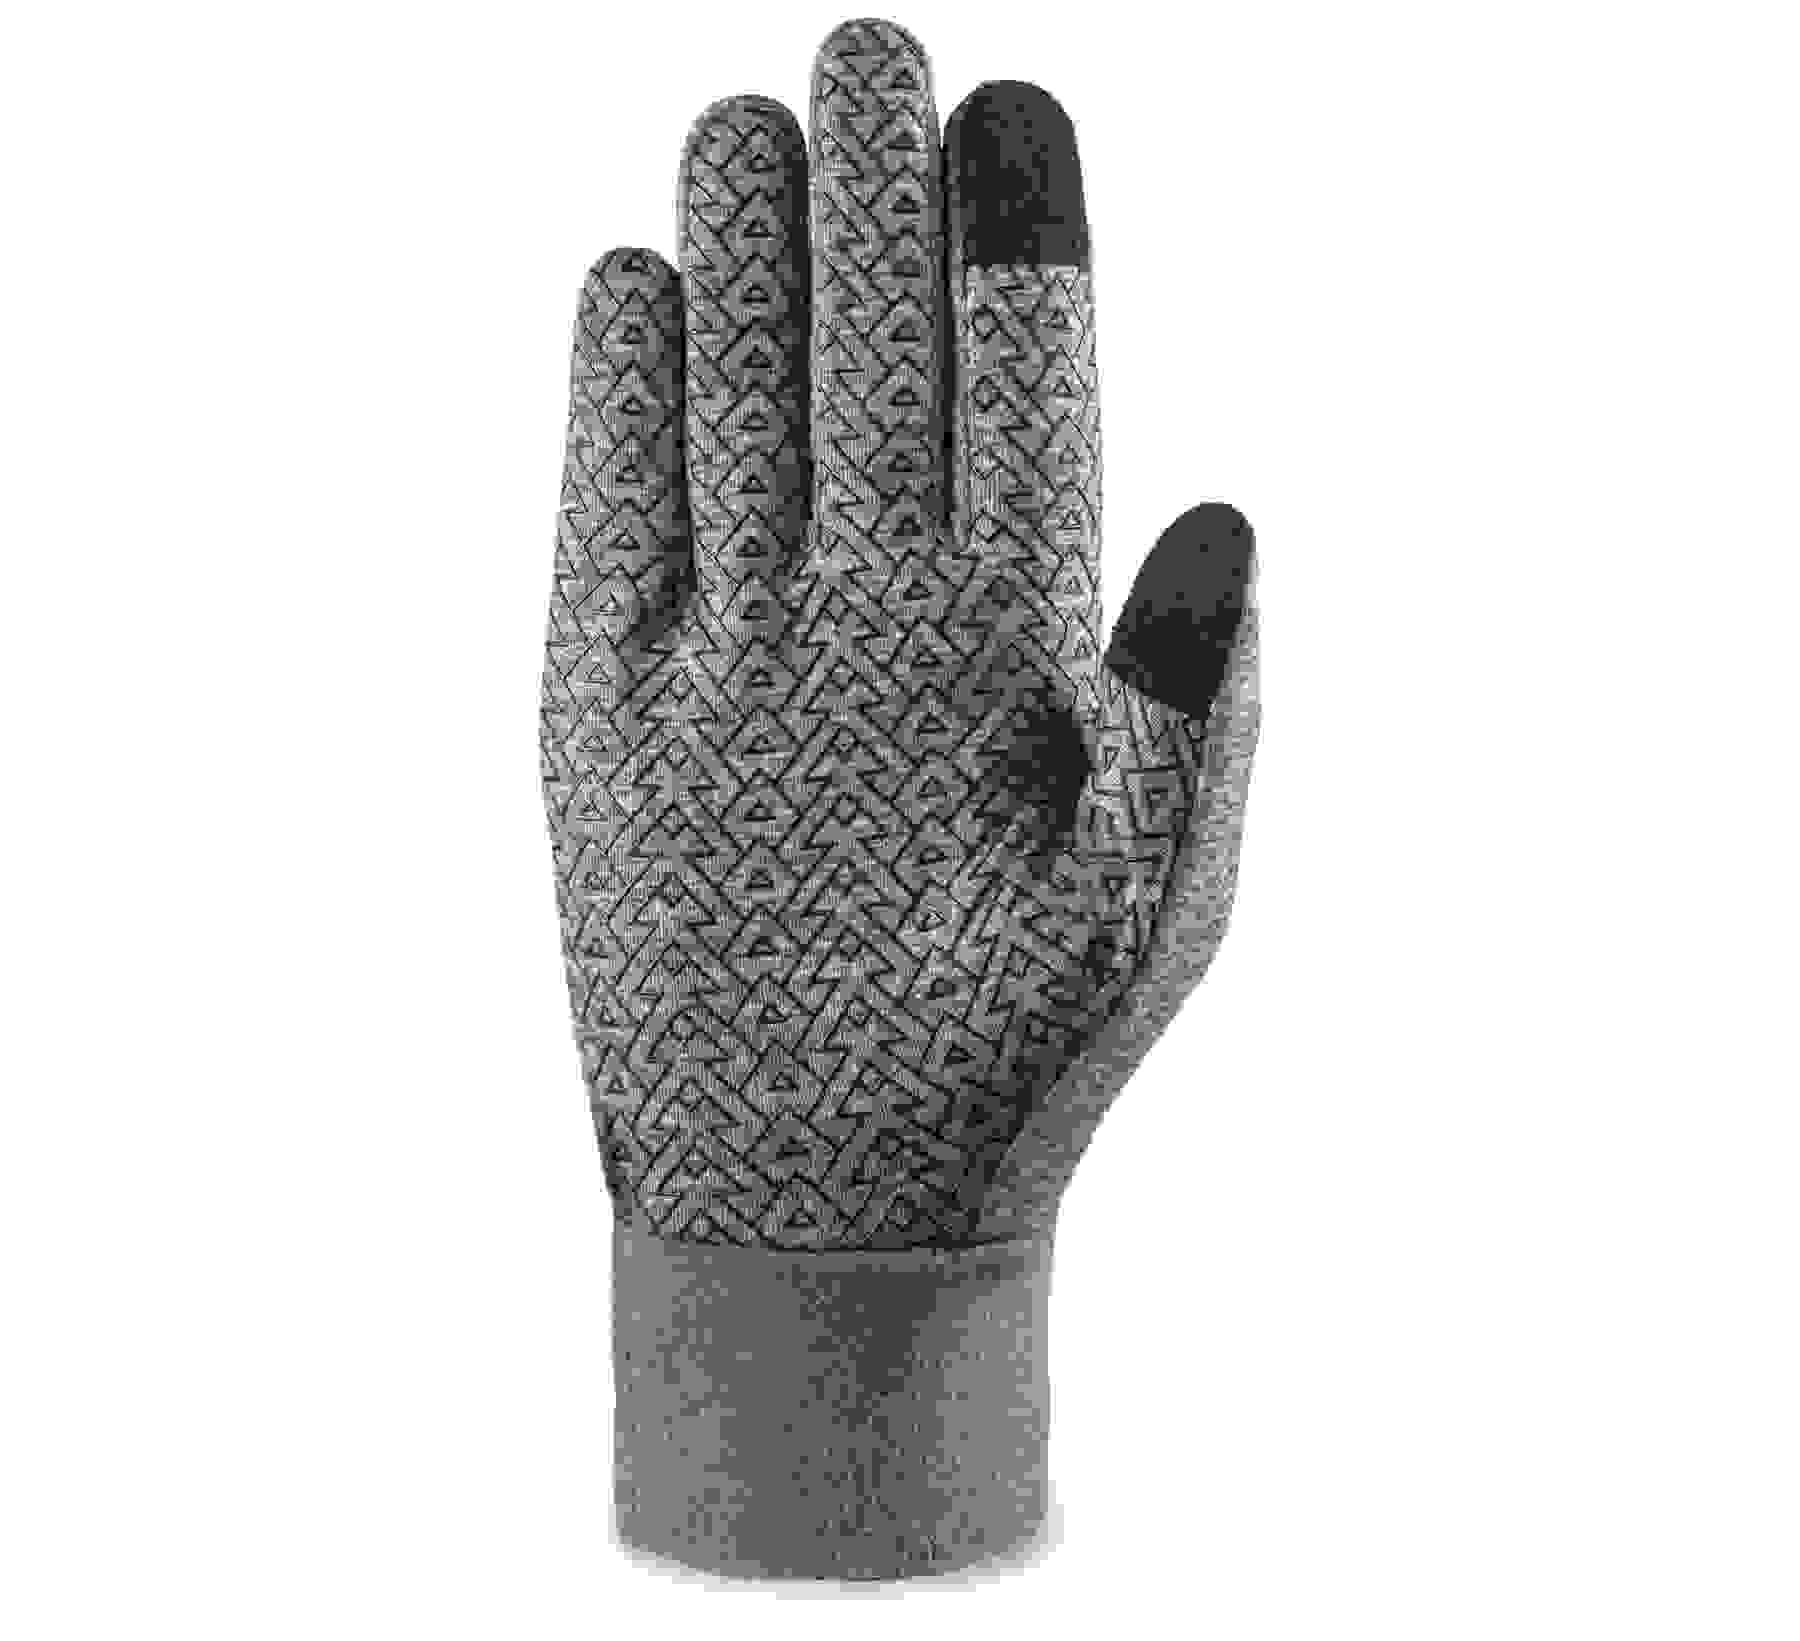 the black and gray glove with touchscreen-compatible fingers